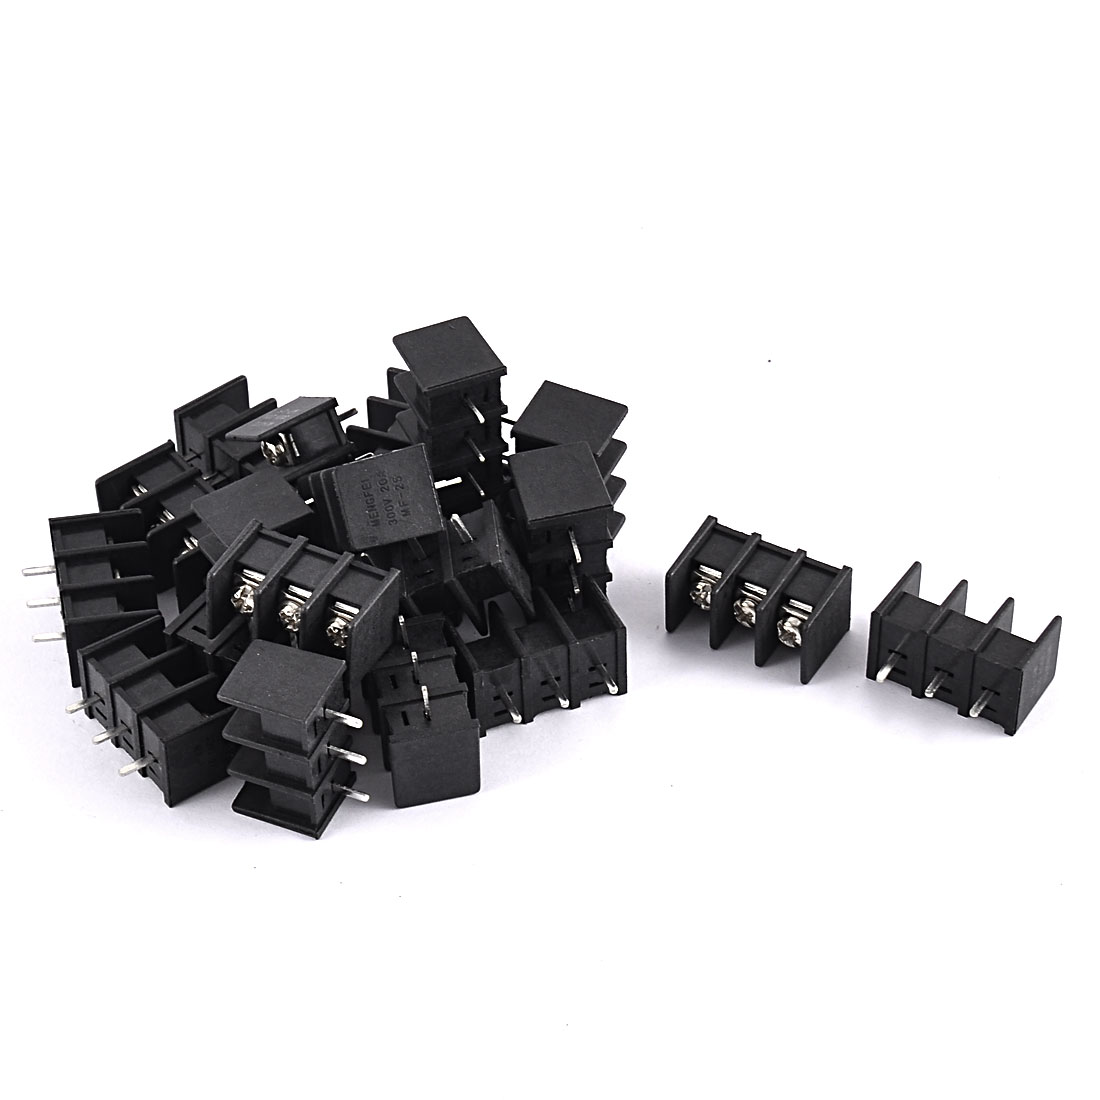 20Pcs 300V 20A 7.62mm Pitch Pluggable Type 3-Position 3-PolePCB Mounting Plastic Screw Terminal Block Connector Black for 14-22AWG